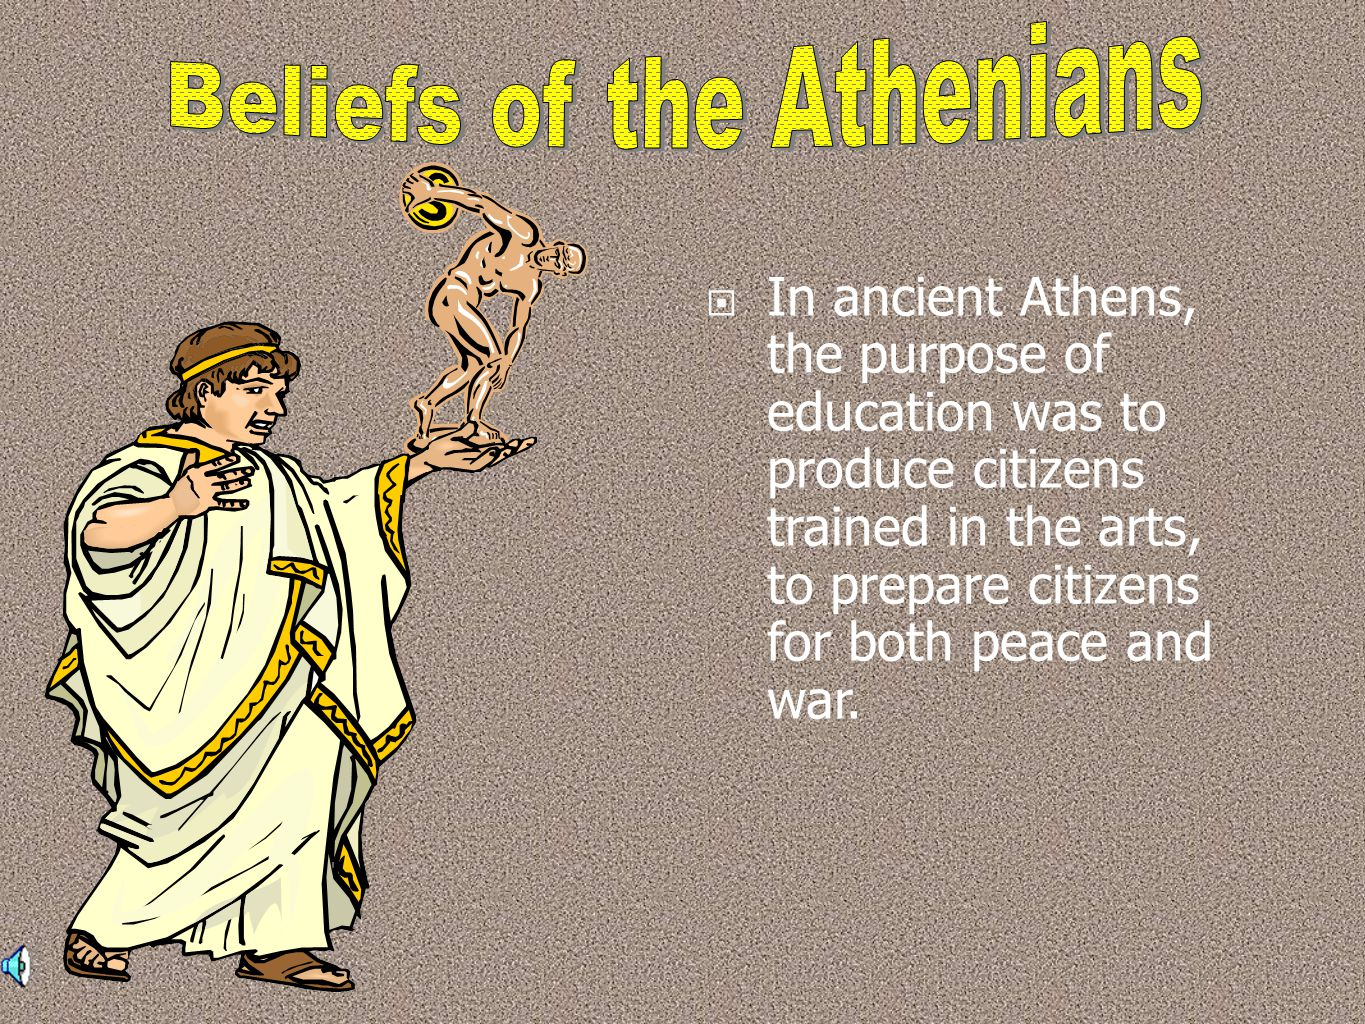 education in ancient athens In athens, physical training and education were extended to the male children of common families, and it became accepted that boys of commoners should be able to read and write schooling was inexpensive because teachers were paid little.